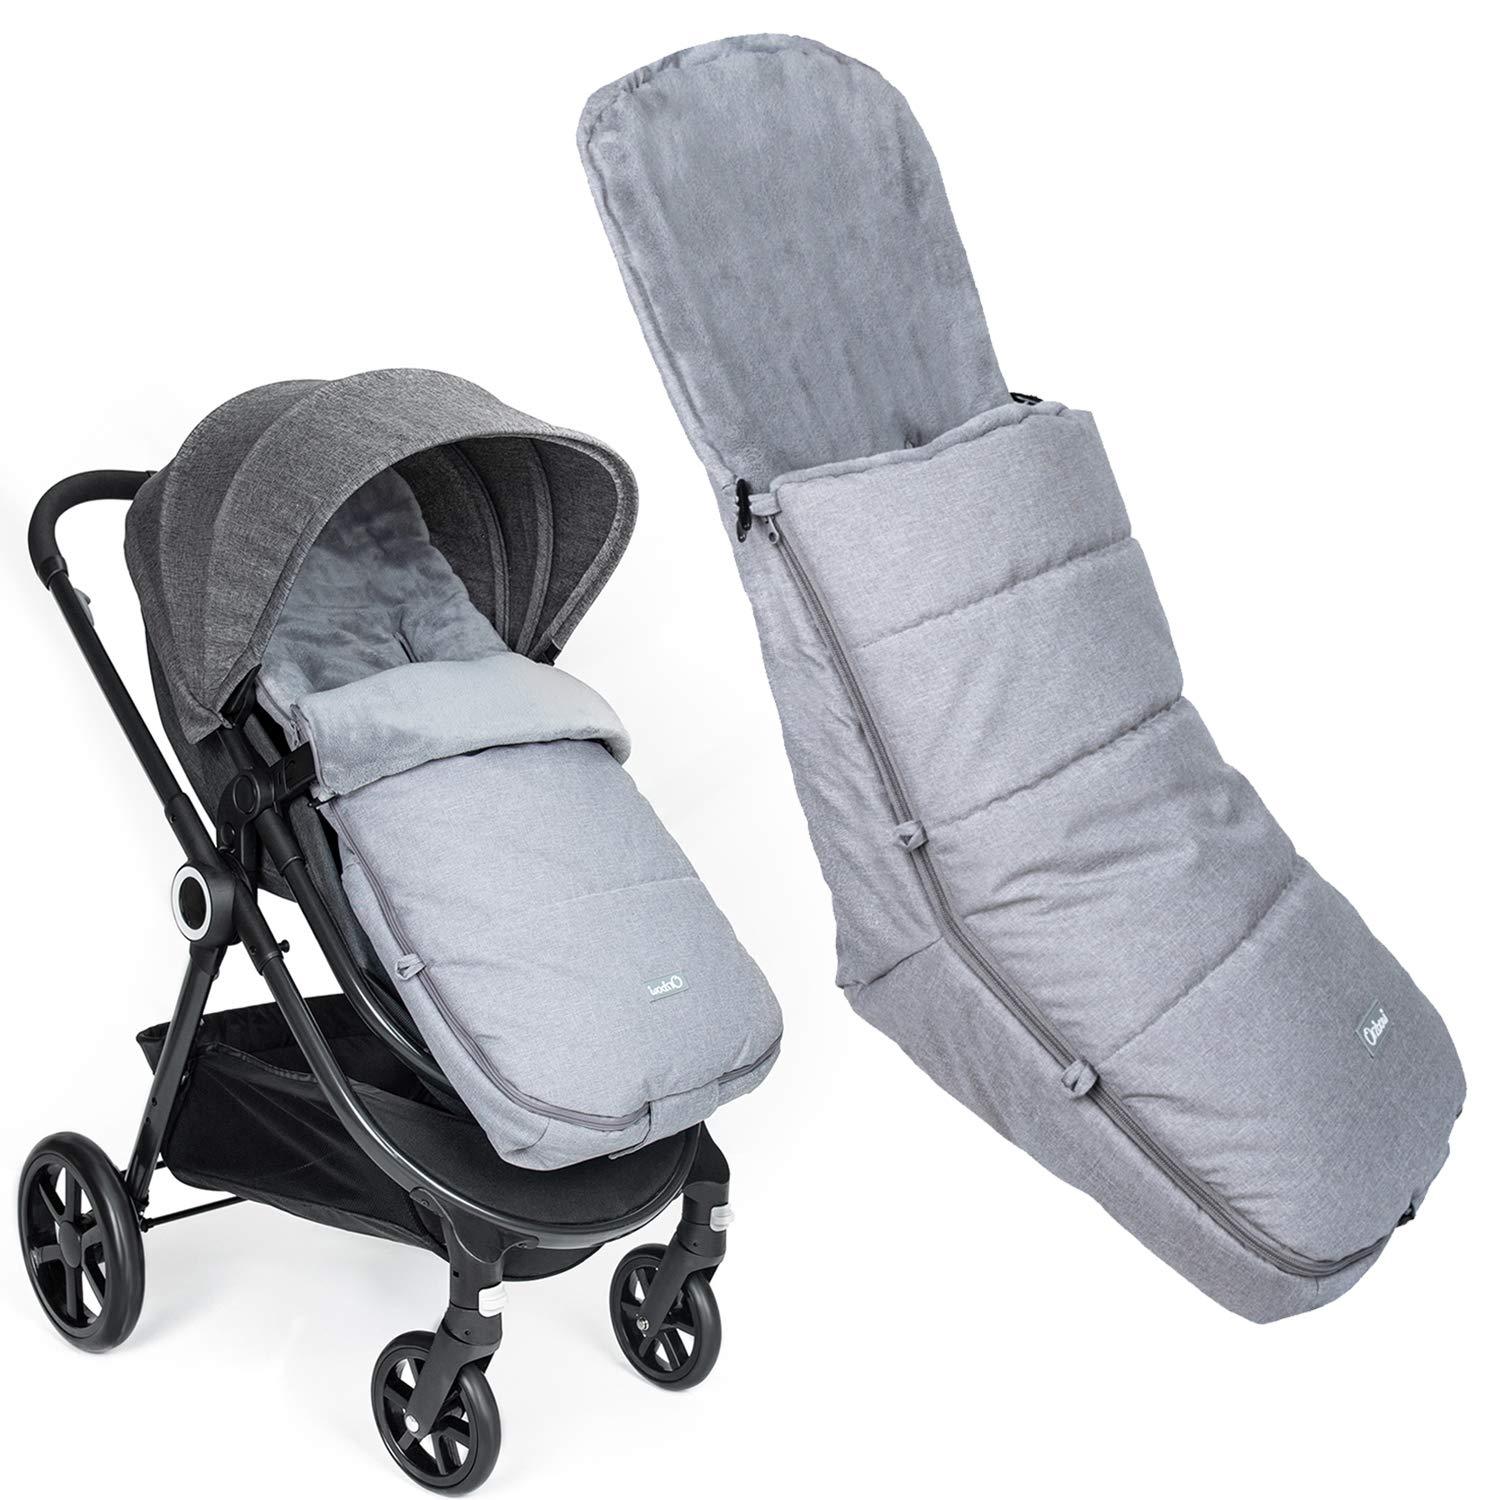 Orzbow Warm Bunting Bag Ranking TOP3 Universal Sleeping Stroller Time sale Wea Cold